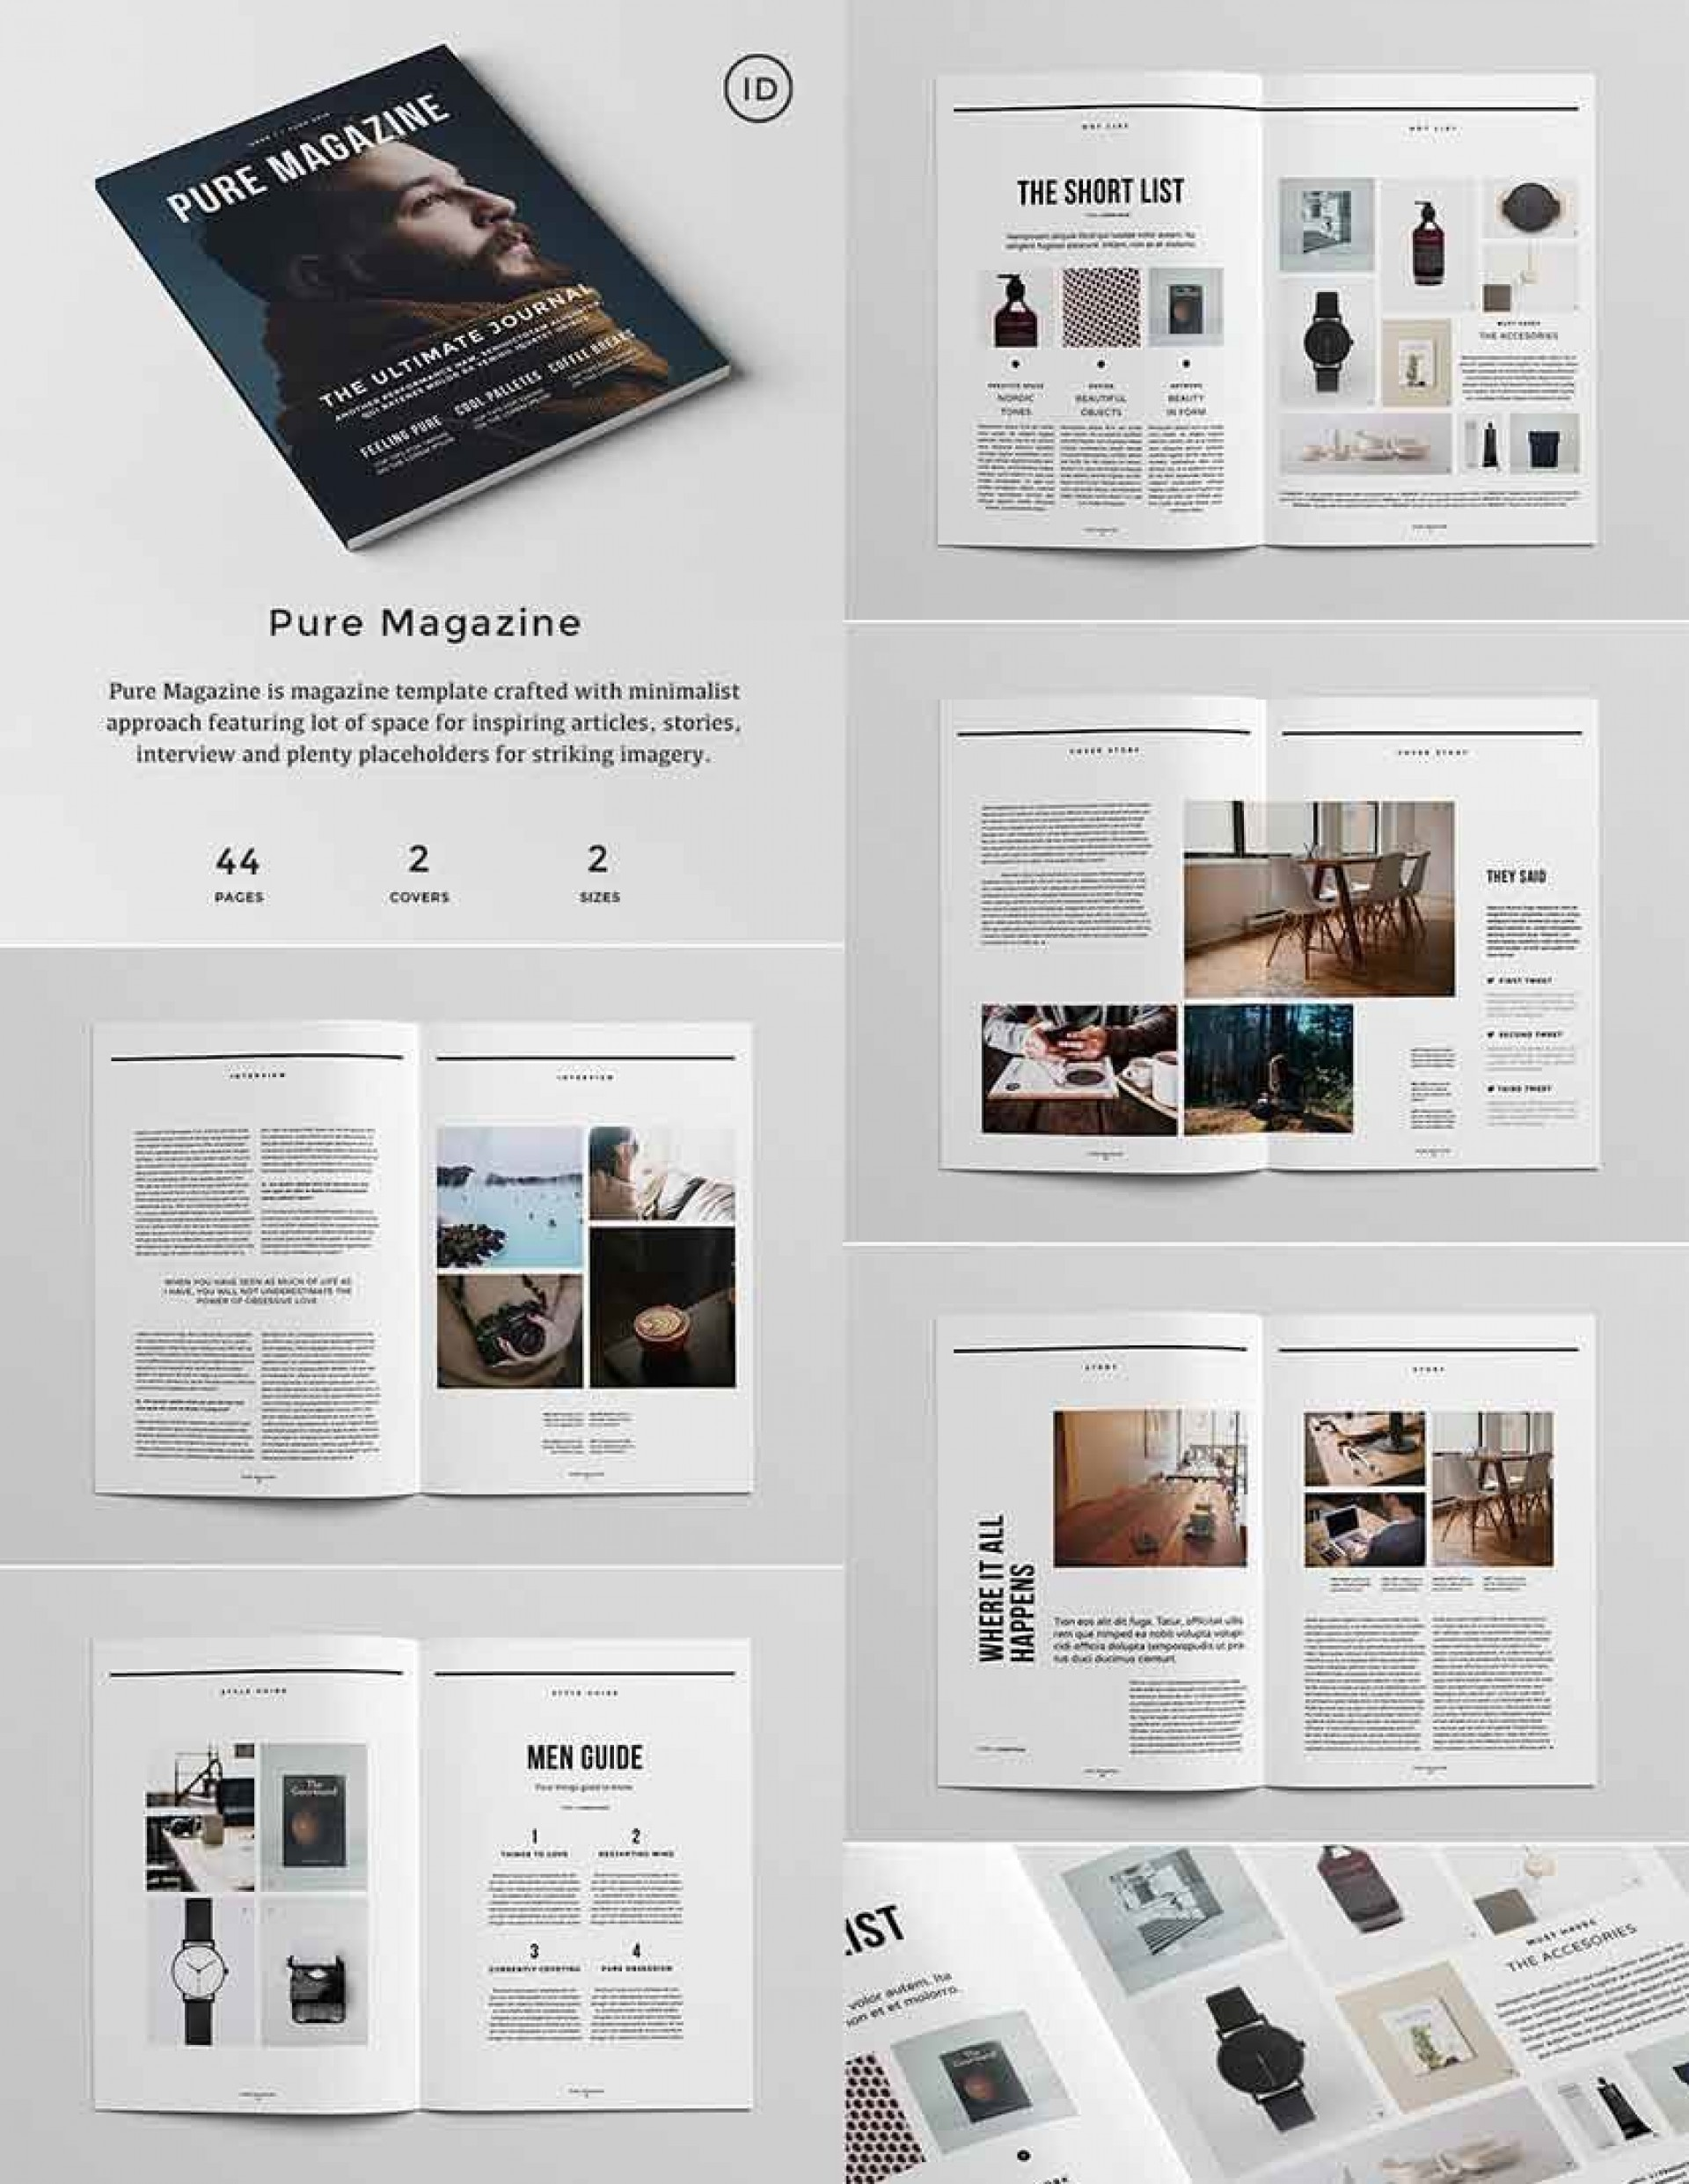 006 Impressive Free Magazine Article Layout Template For Word Design 1920